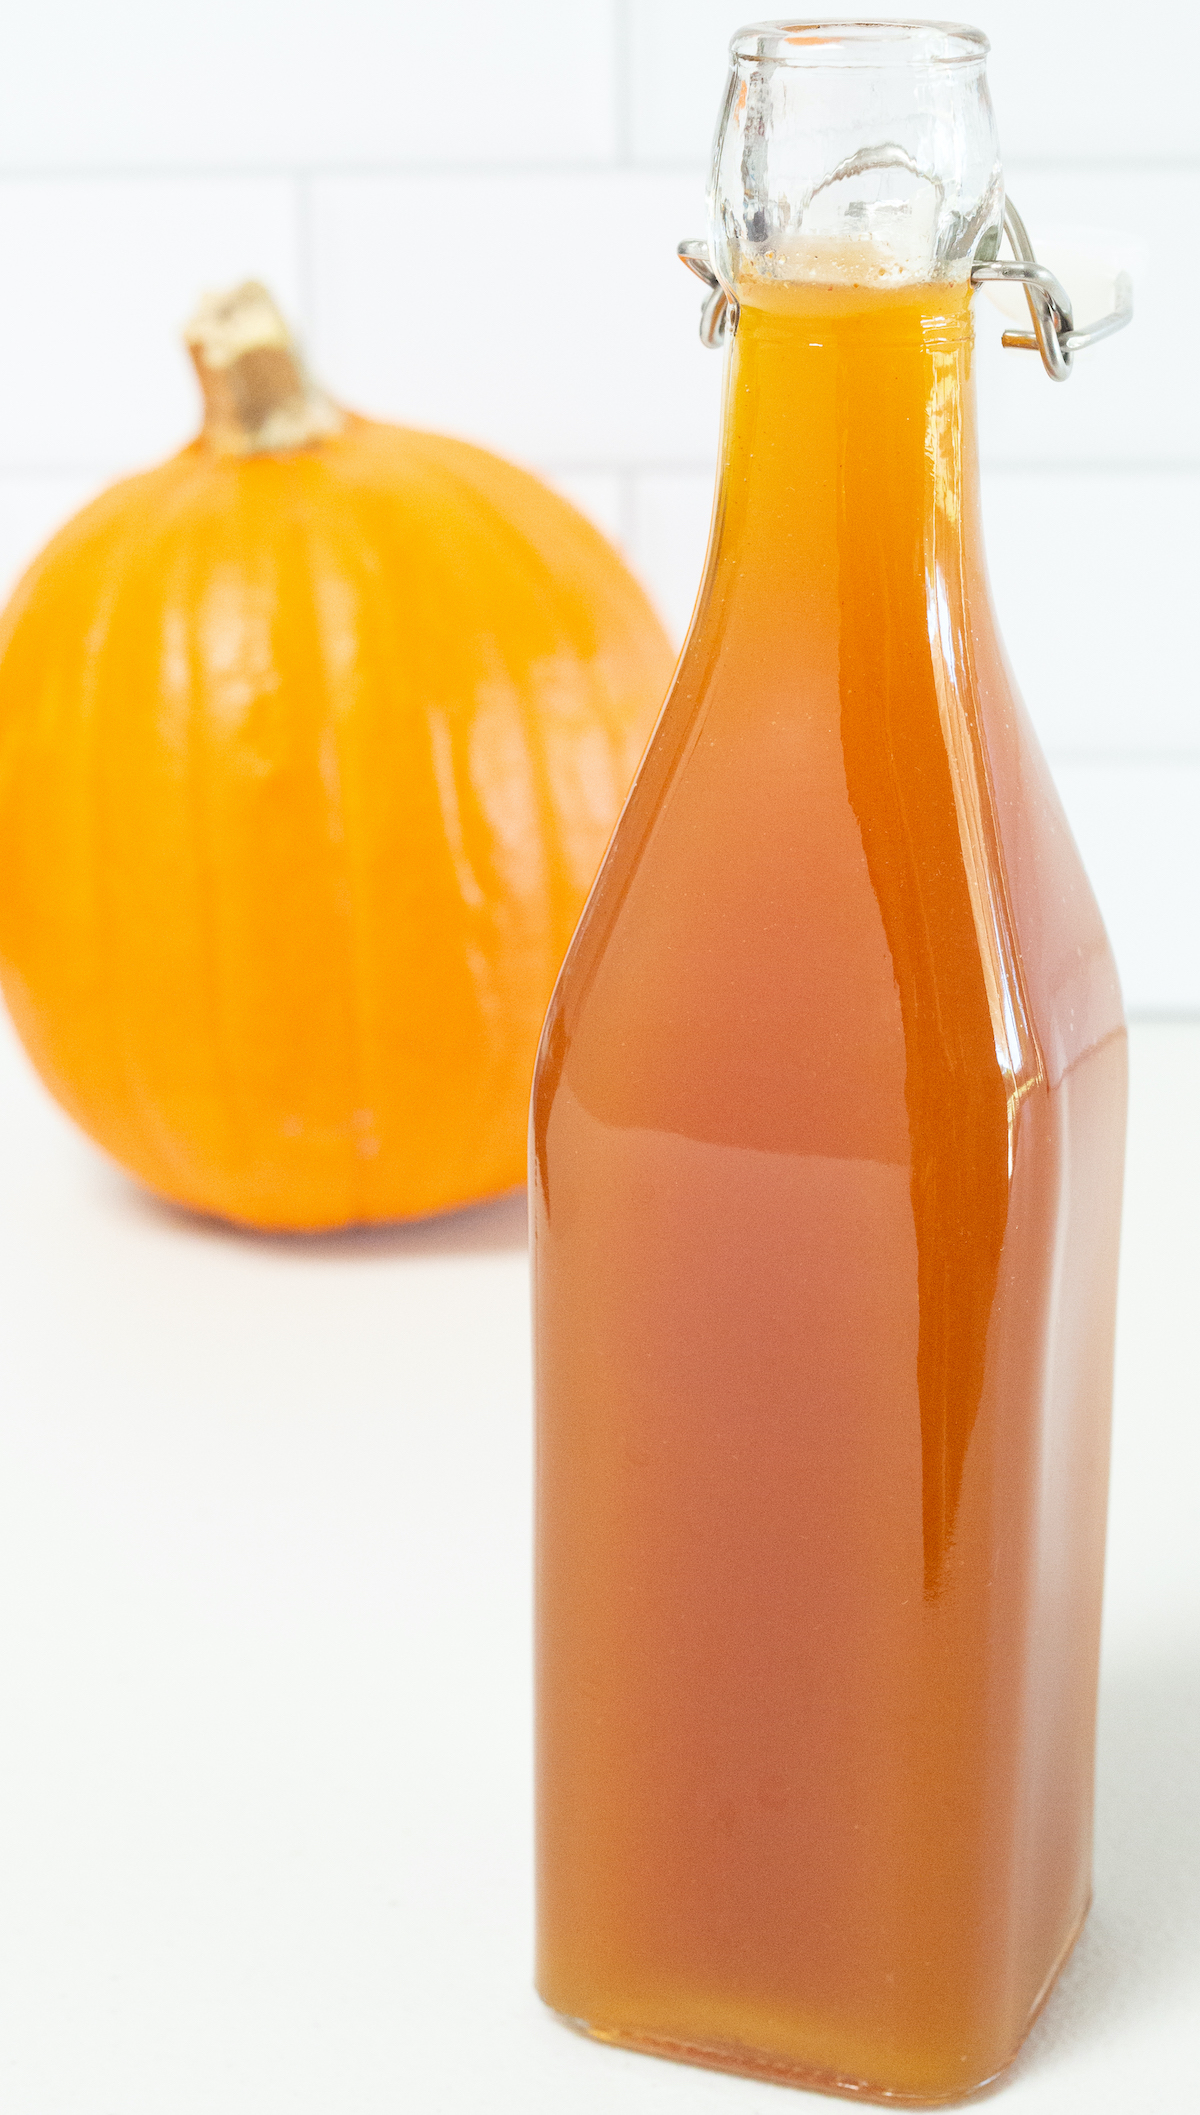 A brownish orange bottle of pumpkin spice syrup is in focus in the foreground, a pumpkin is out of focus in the background.